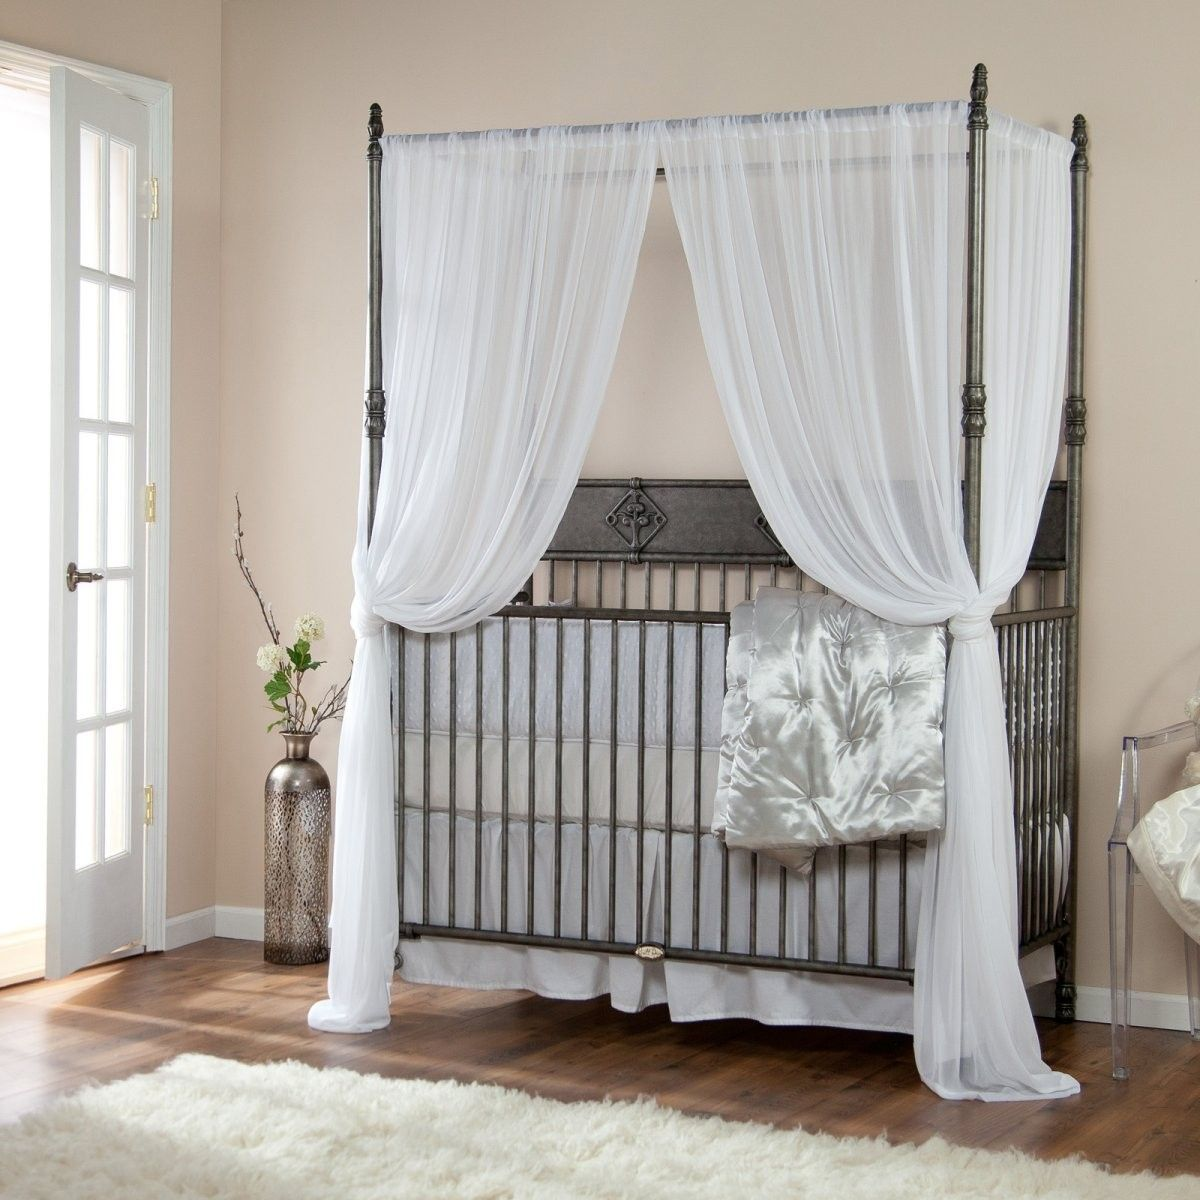 Bratt Decor Wrought Iron Indigo 2 in 1 Convertible Crib Collection - Pewter - Add an elegant touch to any nursery with the Bratt Decor Wrought Iron Indigo 2 ... & cribs | Cribs Type and Styles for Your Baby on LoveKidsZone ...